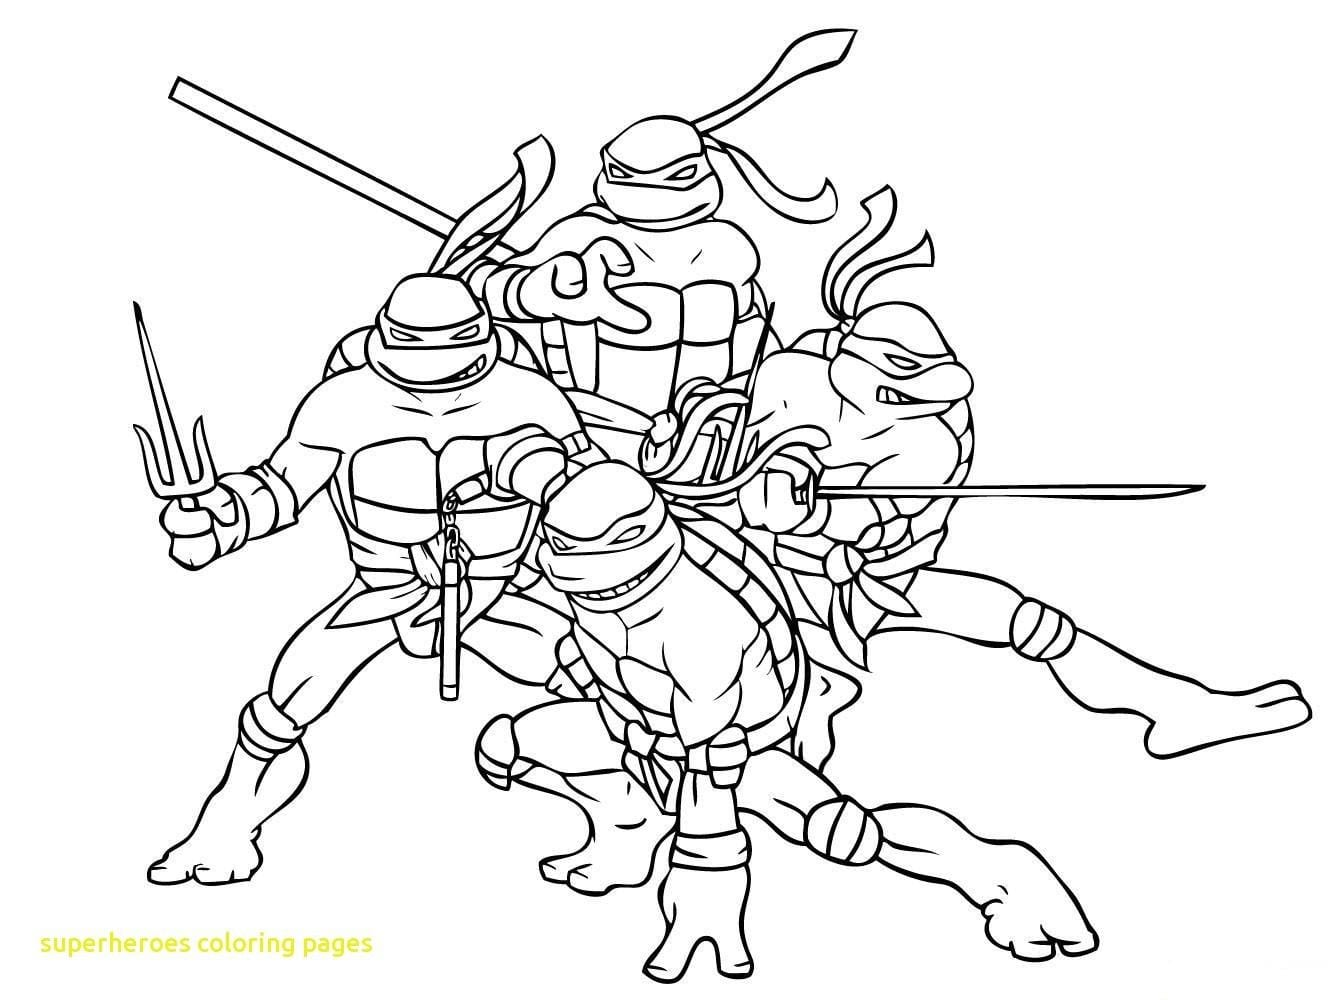 Superhero Coloring Pages Free To Print Best Of Superheroes